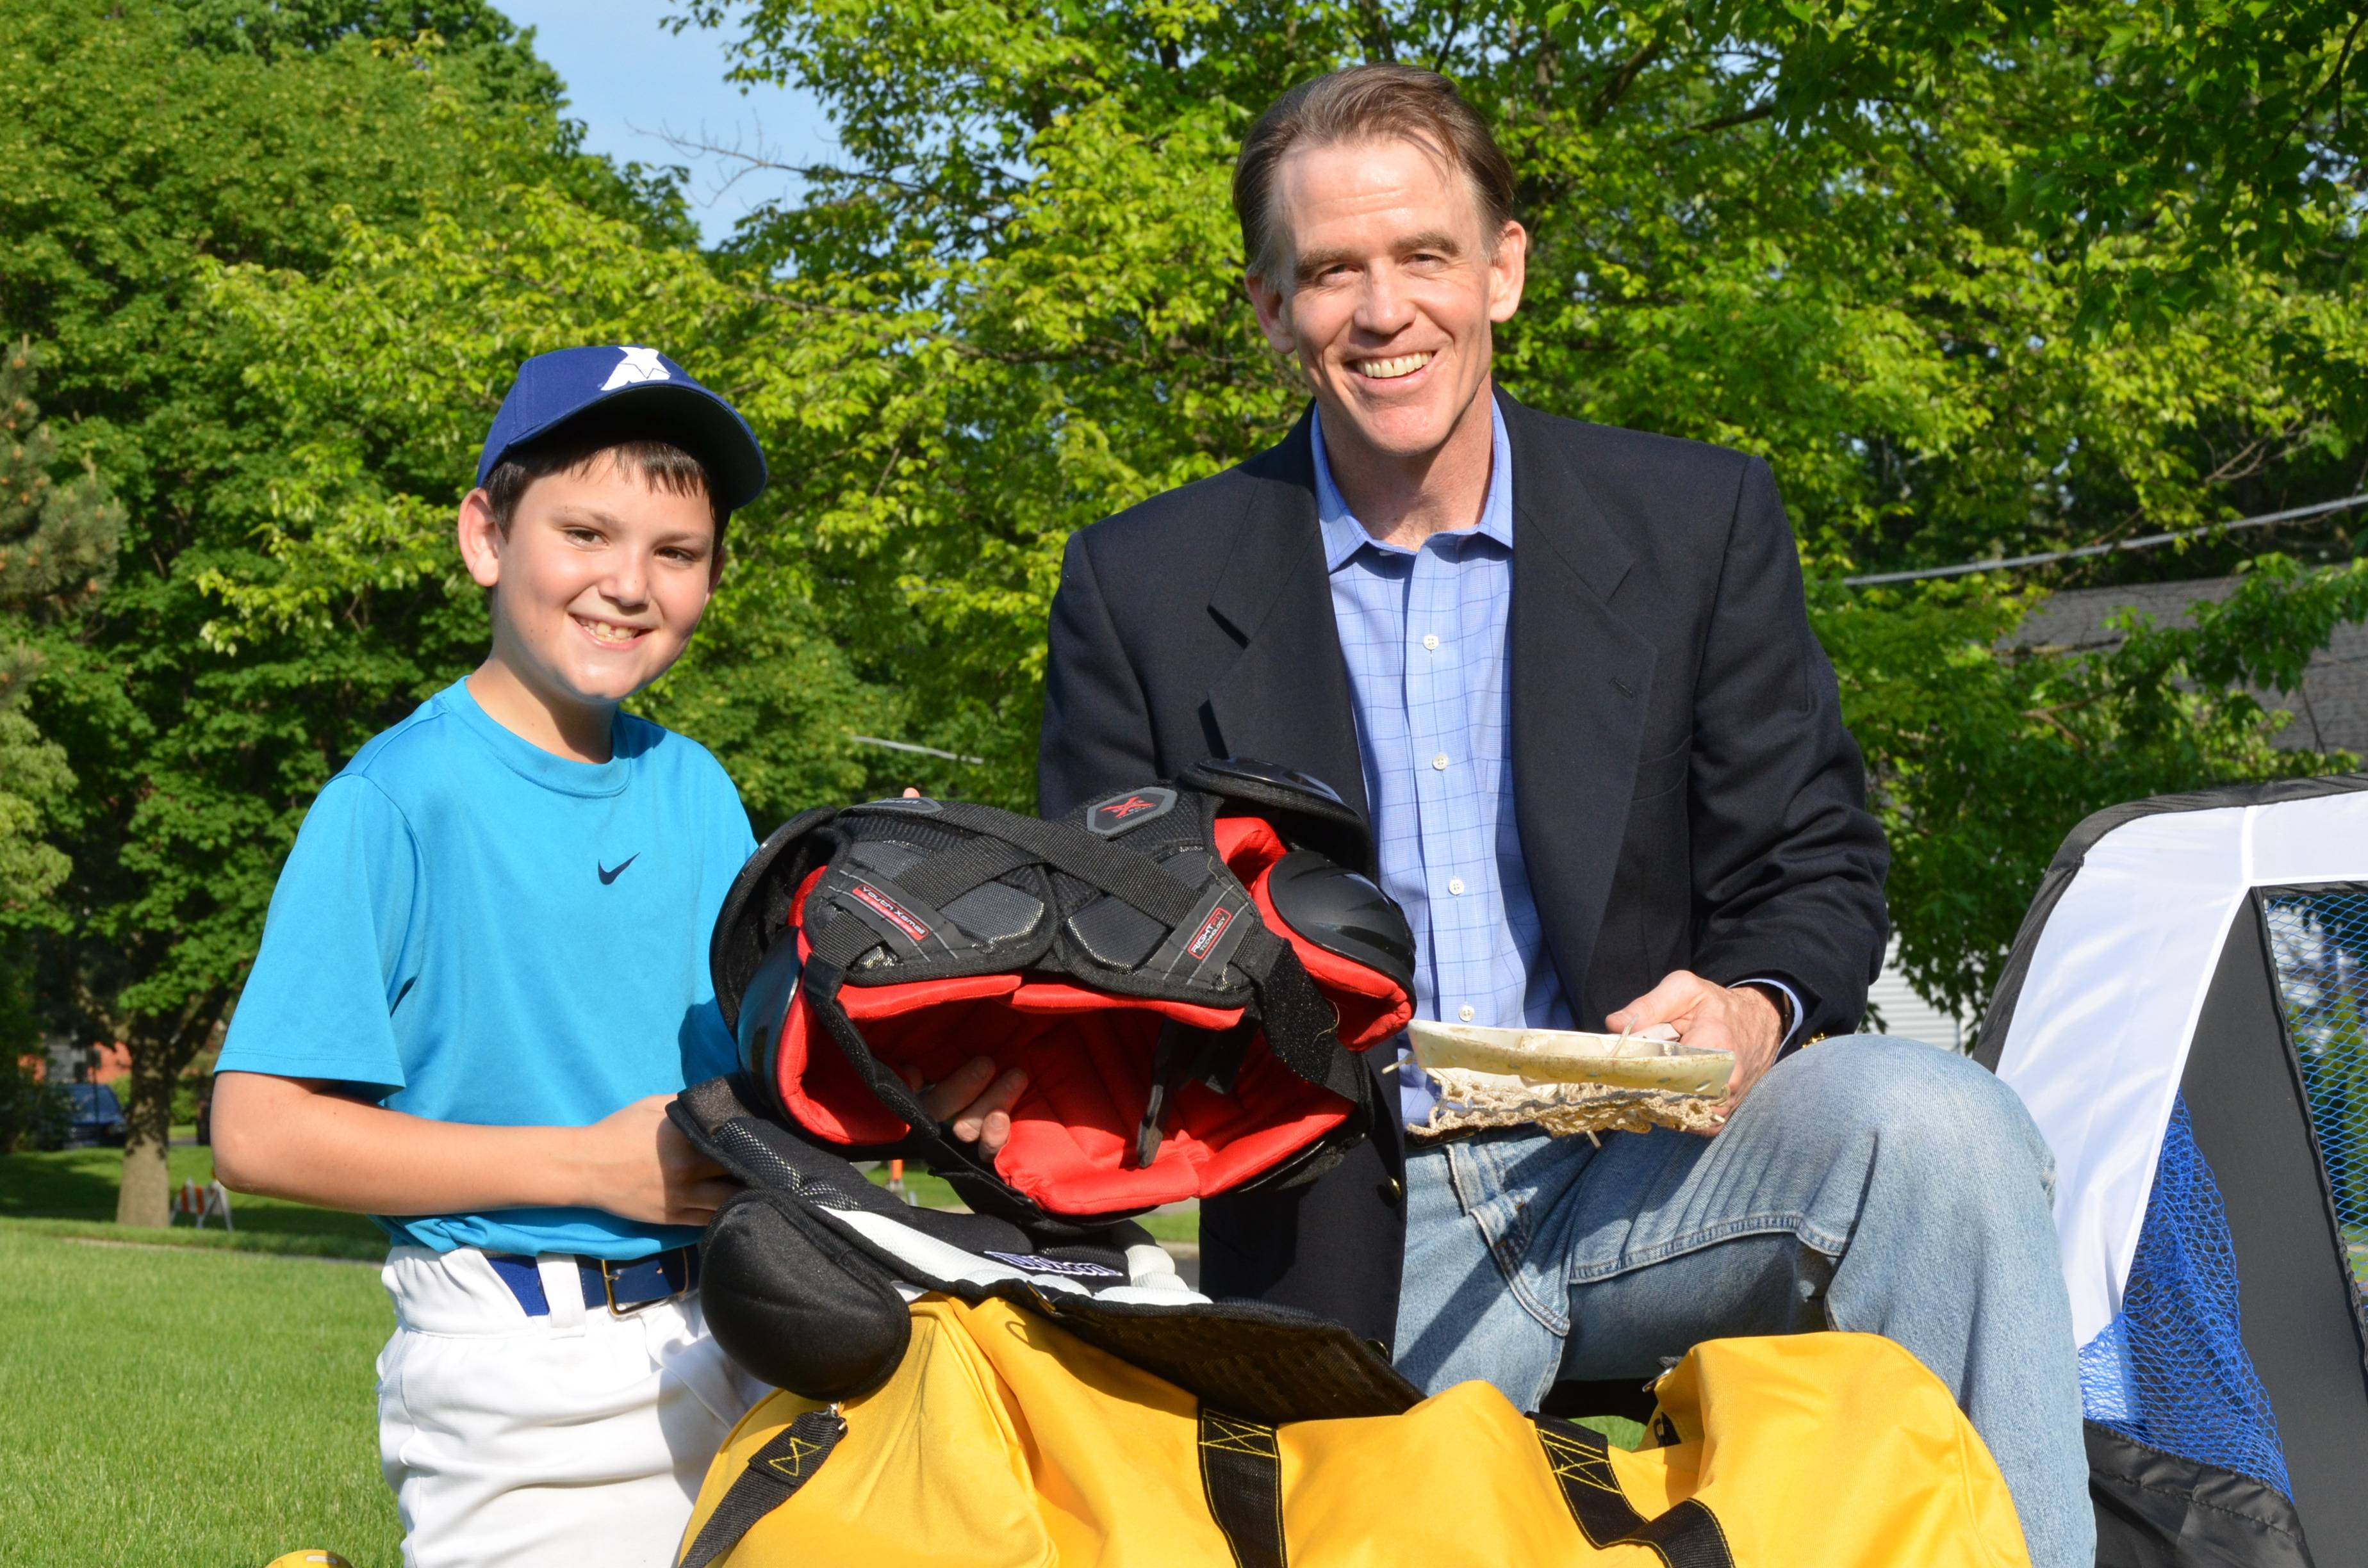 Gear for Goals' newly appointed Youth Ambassador Jared Kuper poses with G4G Executive Director Dr. Warren Bruhl with sports gear collected for children in Guatemala.